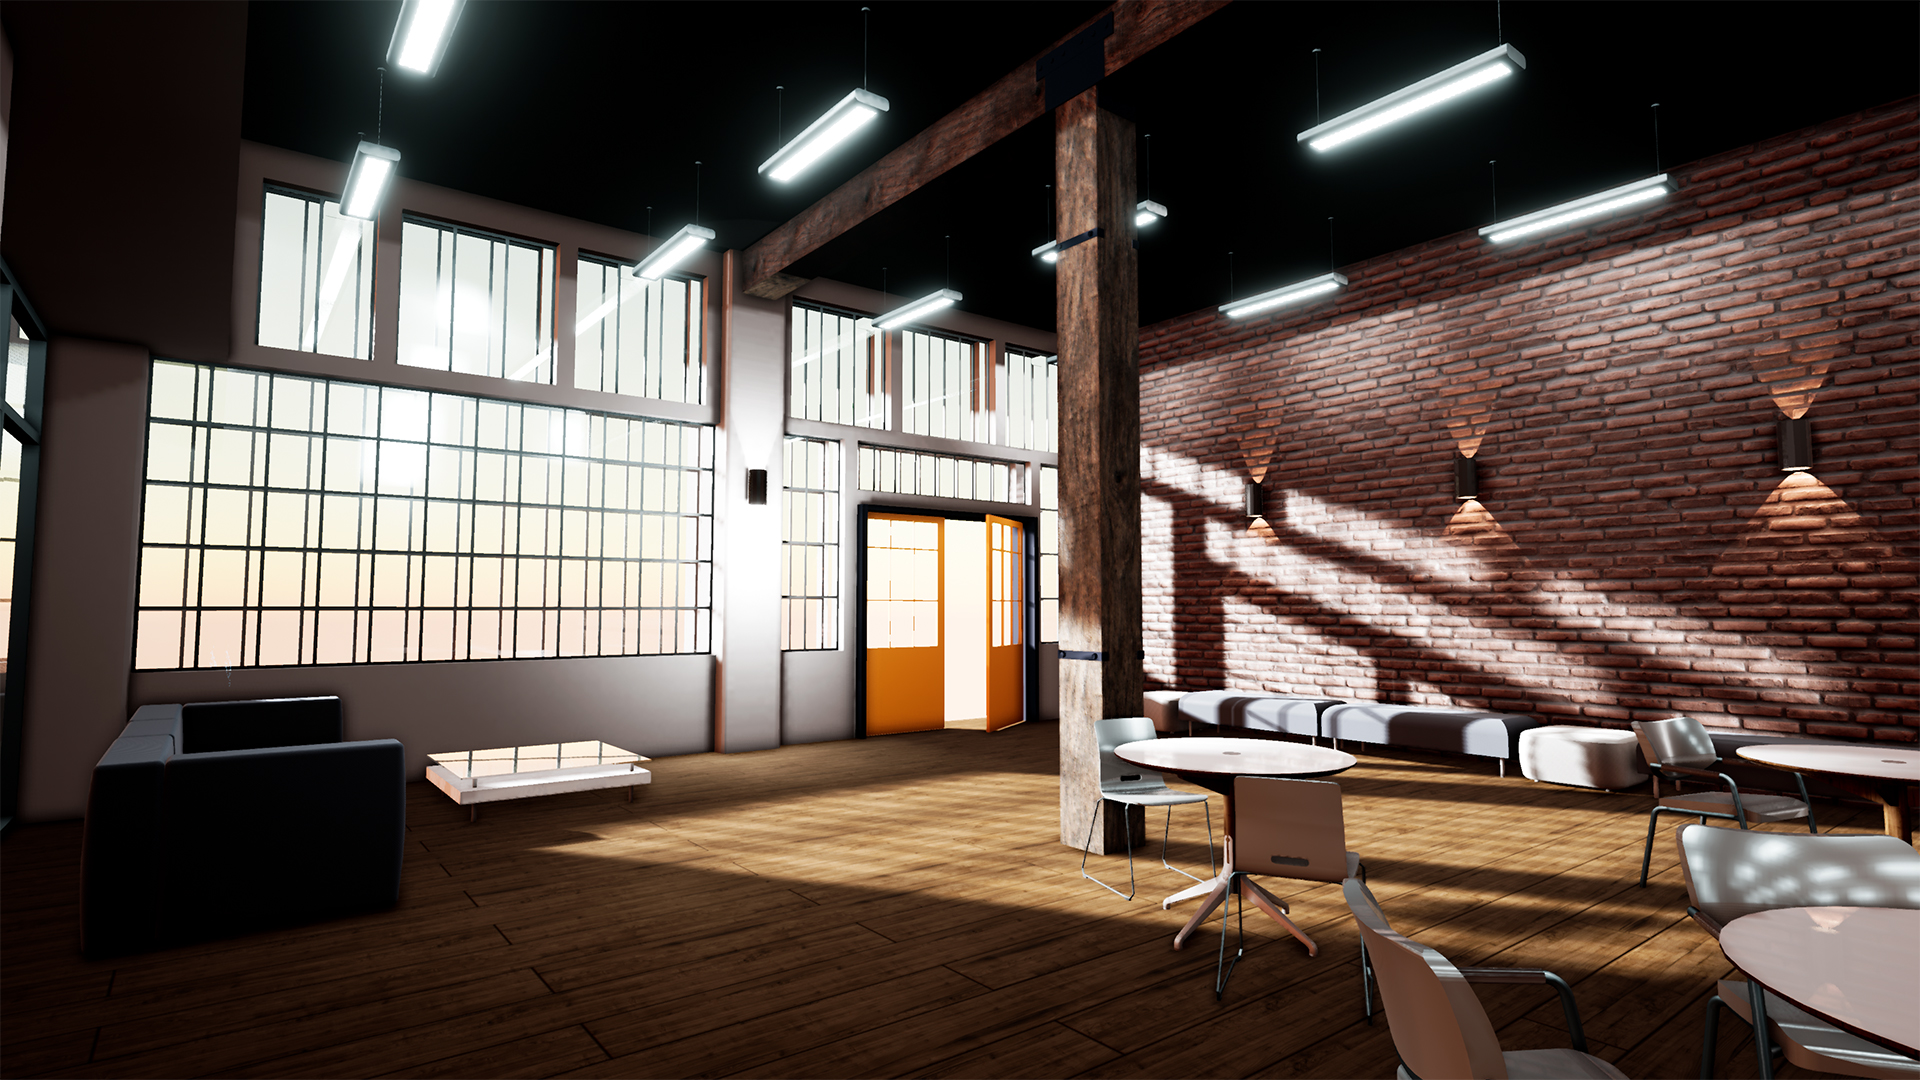 Revit to Unreal for Architecture, Visualization, and VR